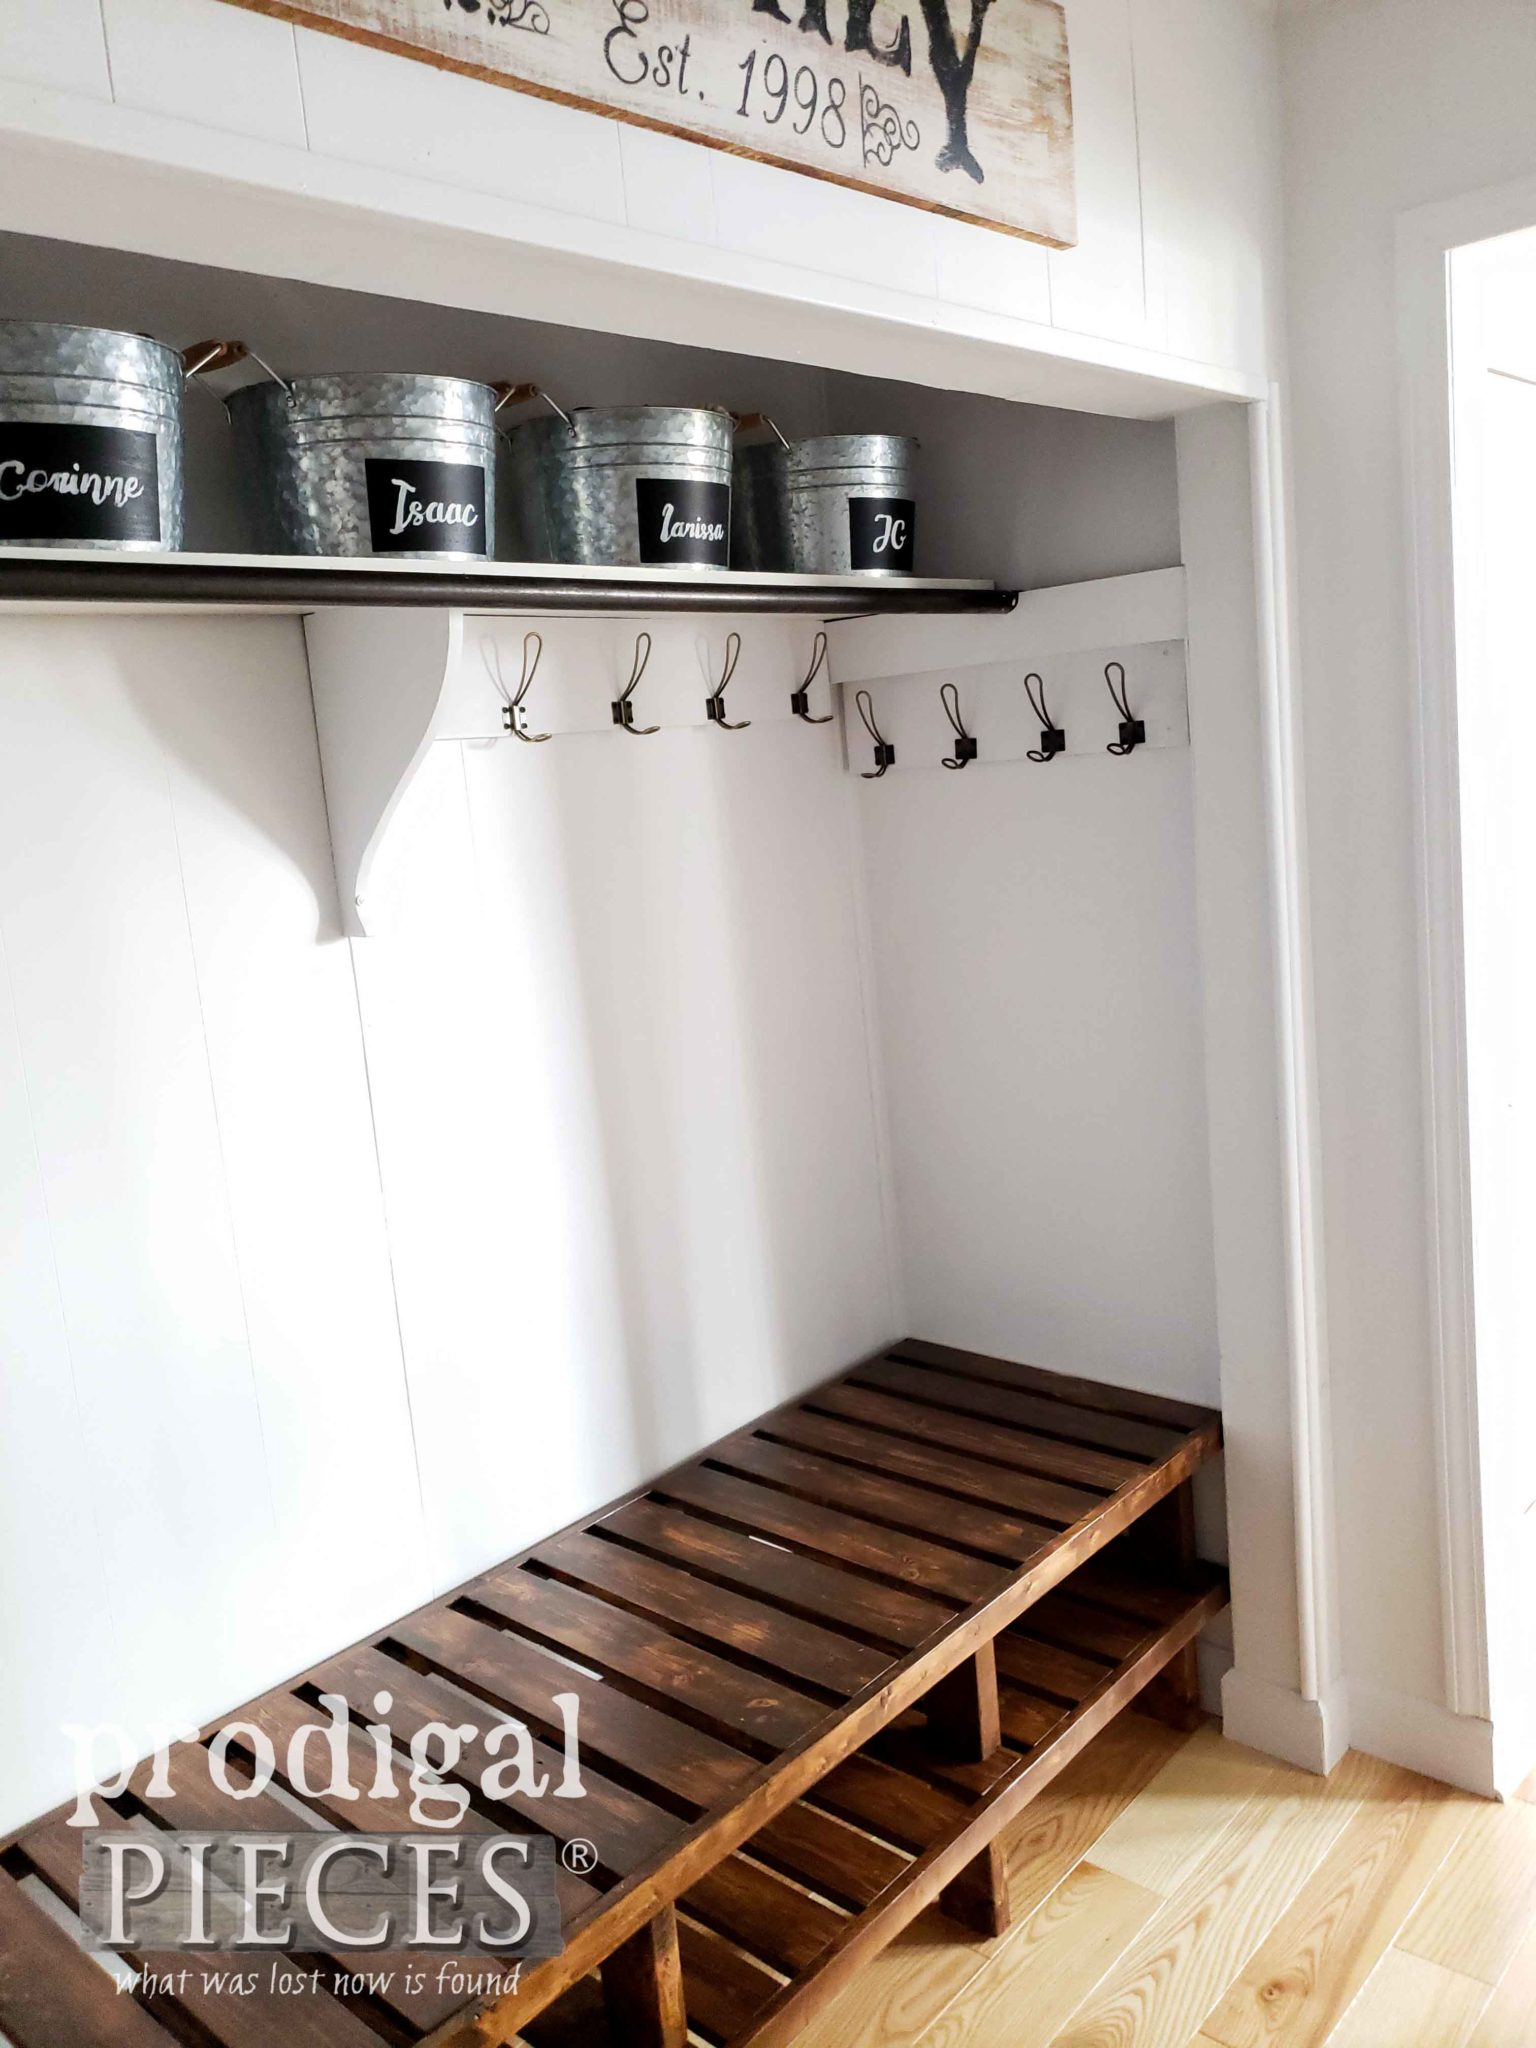 Custom Built Farmhouse Style Mudroom Bench by Larissa of Prodigal Pieces | prodigalpieces.com #prodigalpieces #diy #home #homedecor #farmhouse #storage